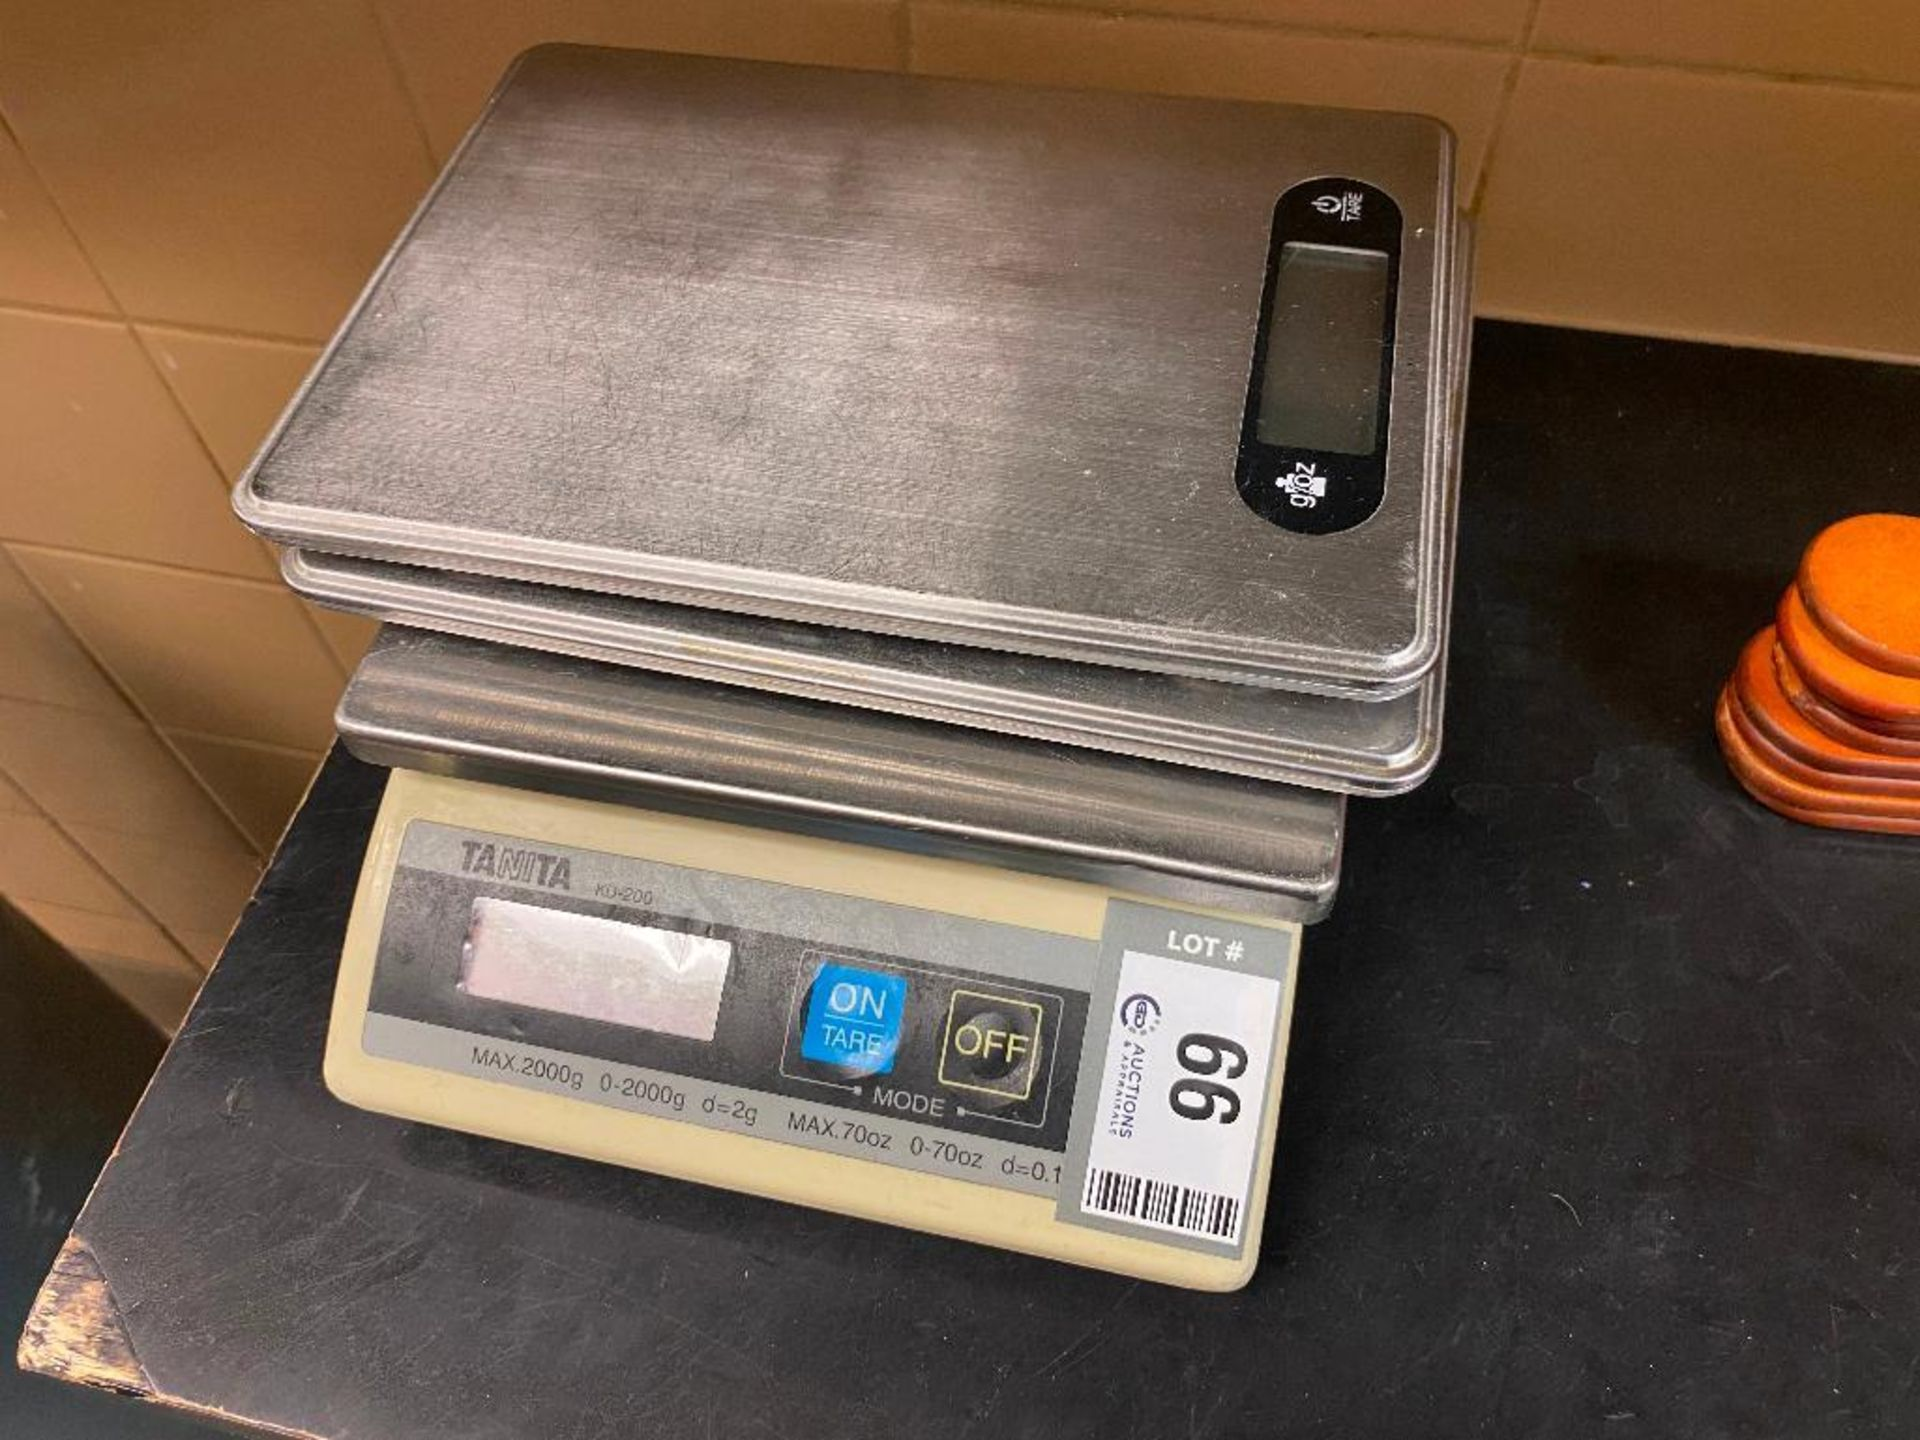 LOT OF (3) ASSORTED KITCHEN SCALES INCLUDING (1) TANITA KD-200 - Image 2 of 2